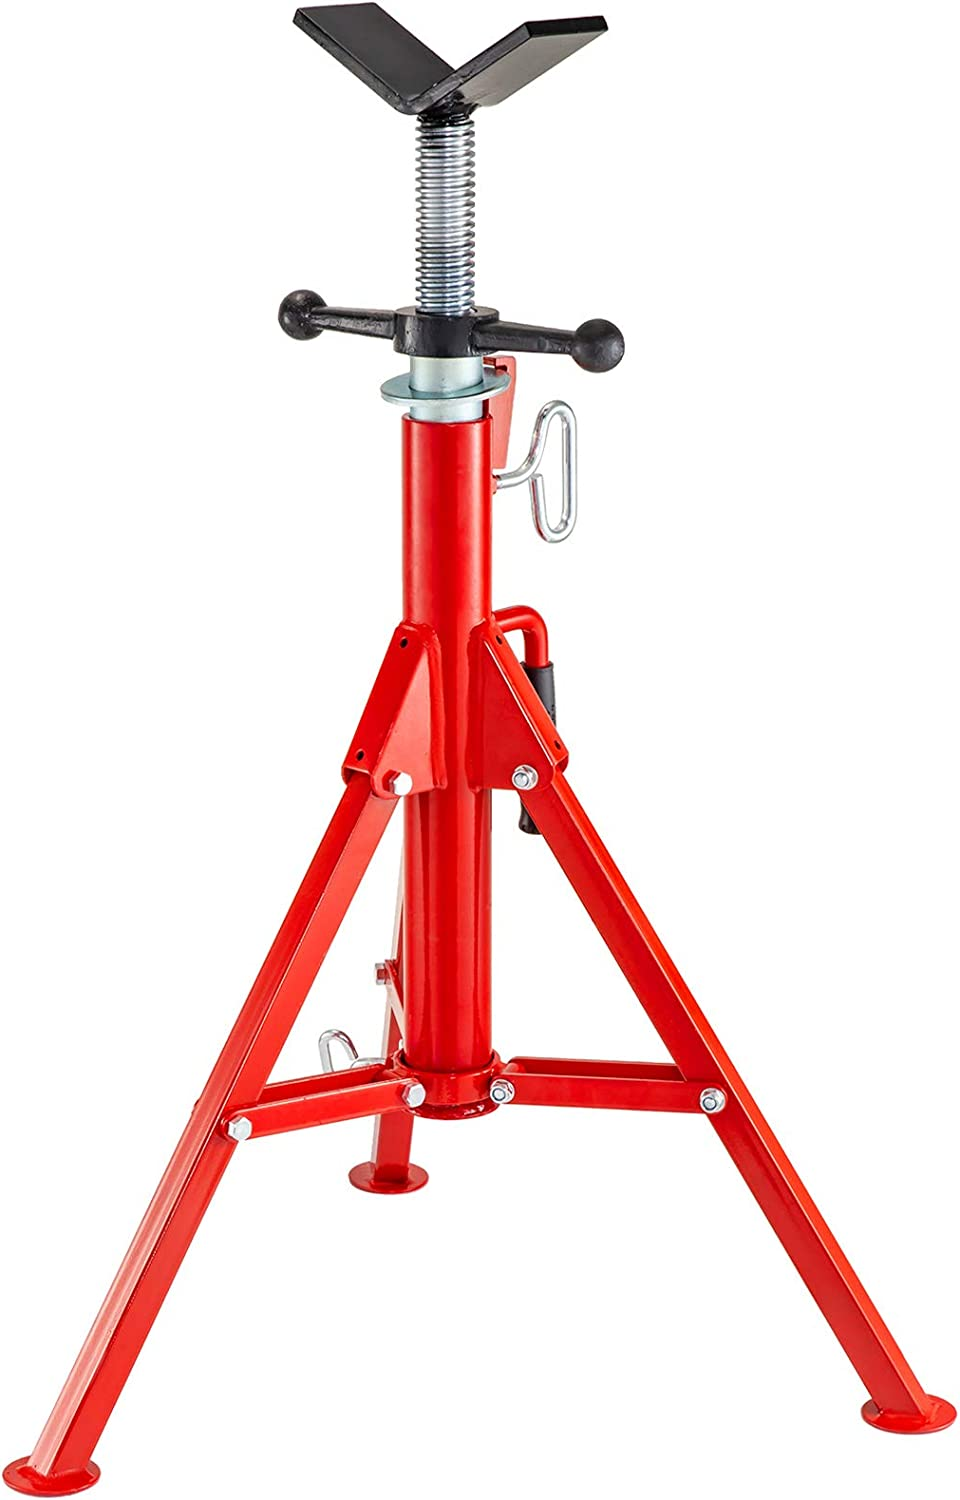 Mophorn V Head Pipe Stand Adjustable Height 28-52 Inch, Pipe Jac